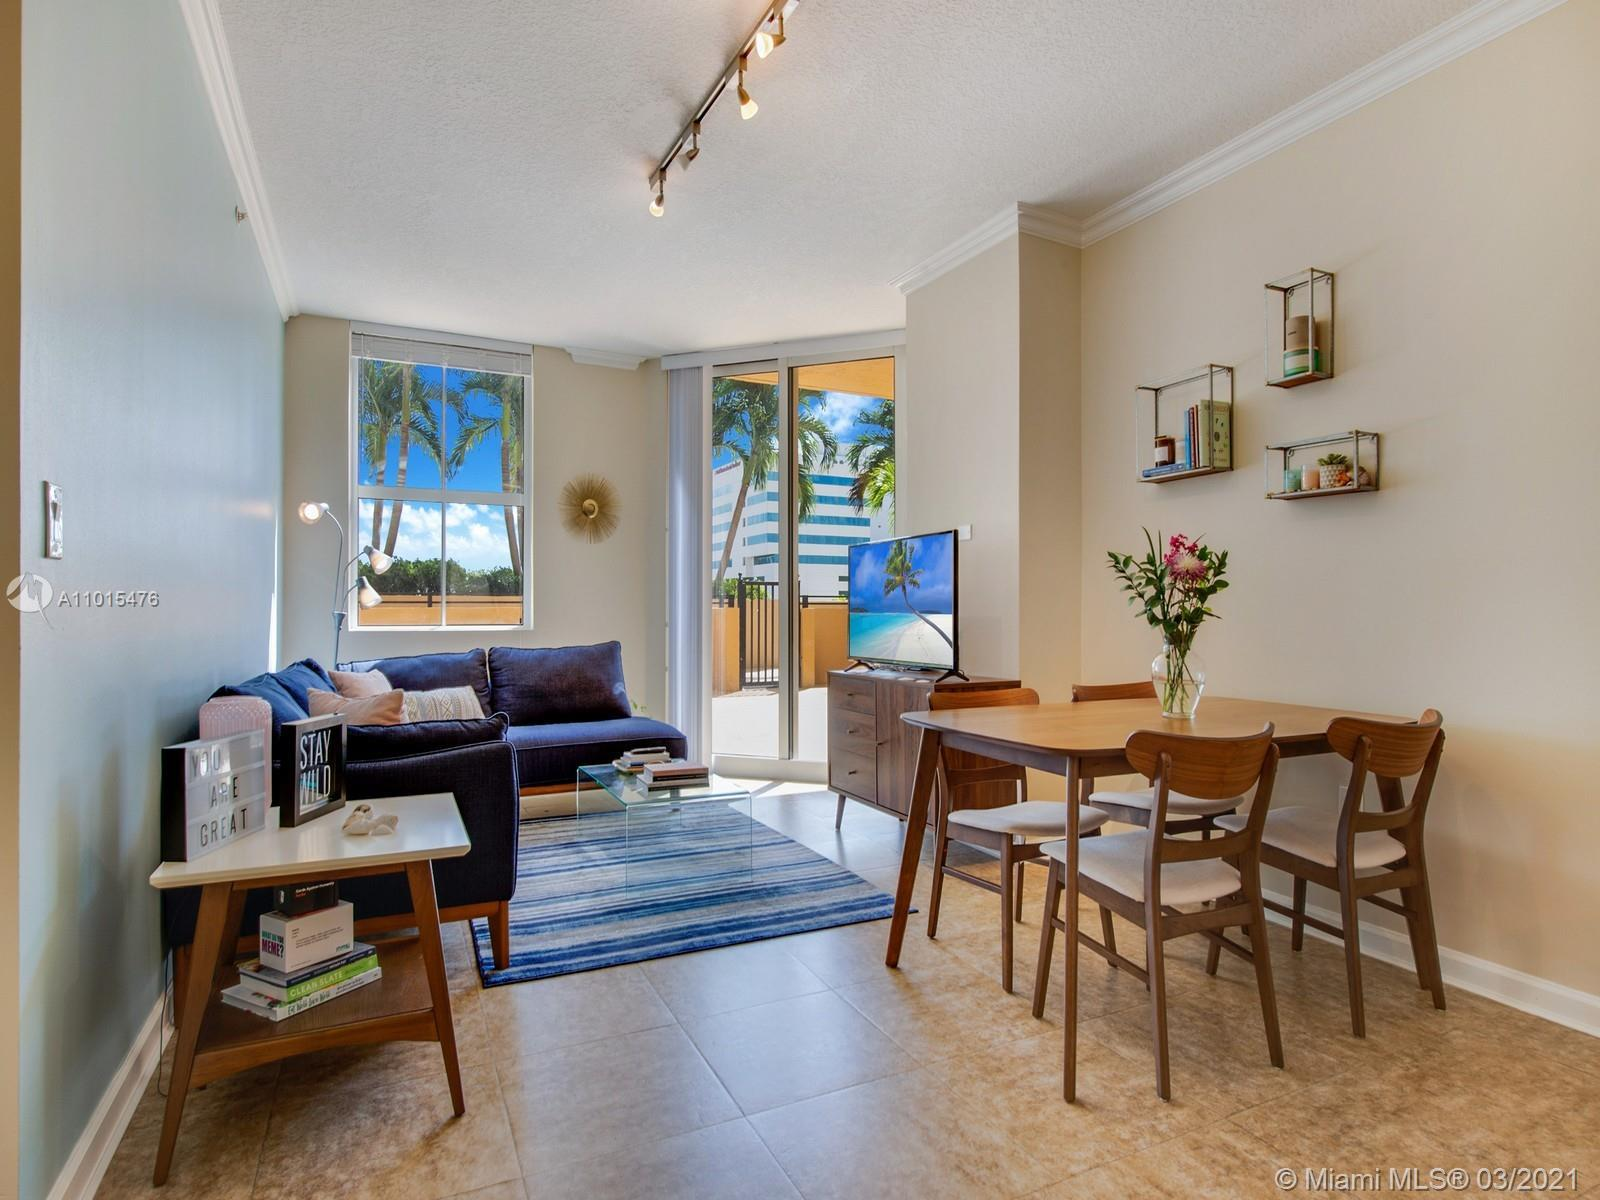 RARELY AVAILABLE LANAI UNIT! This remodeled corner unit offers a bright and spacious split bedroom f